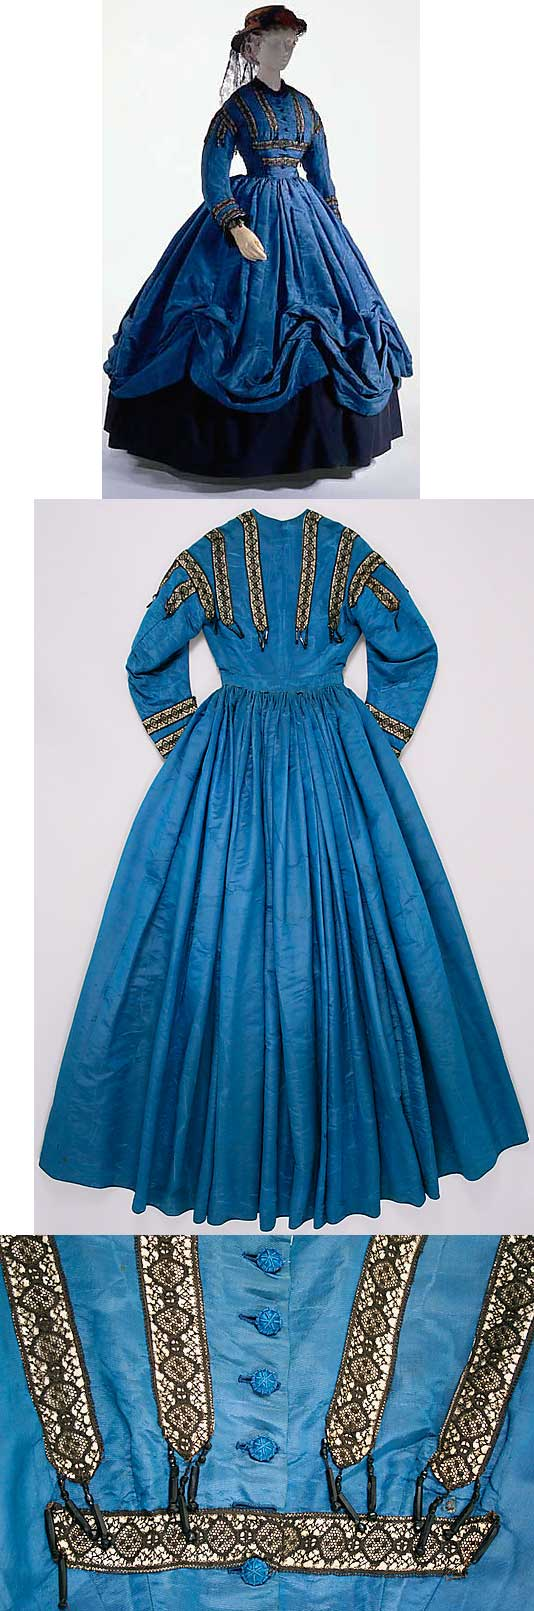 French silk dress, circa 1864. American walking dress, c. 1864, of blue watered…